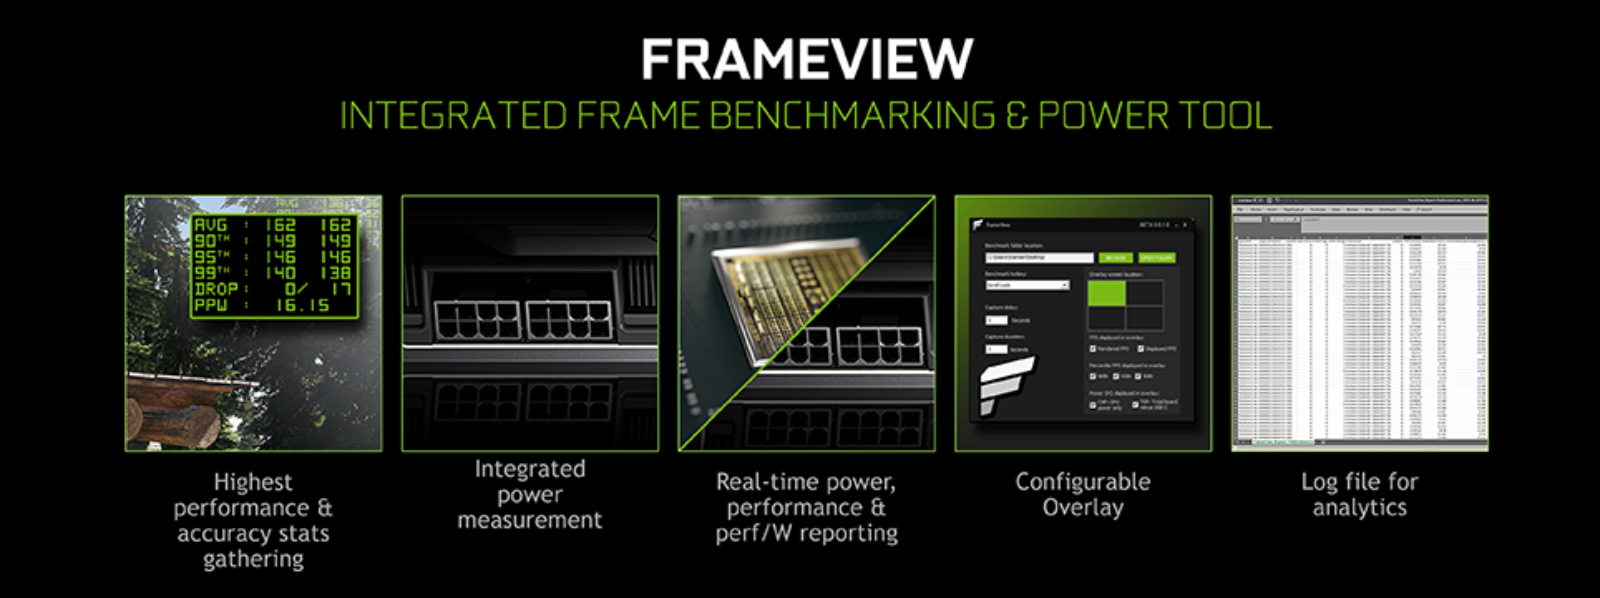 Nvidia's FrameView gaming benchmark tool promises highly accurate